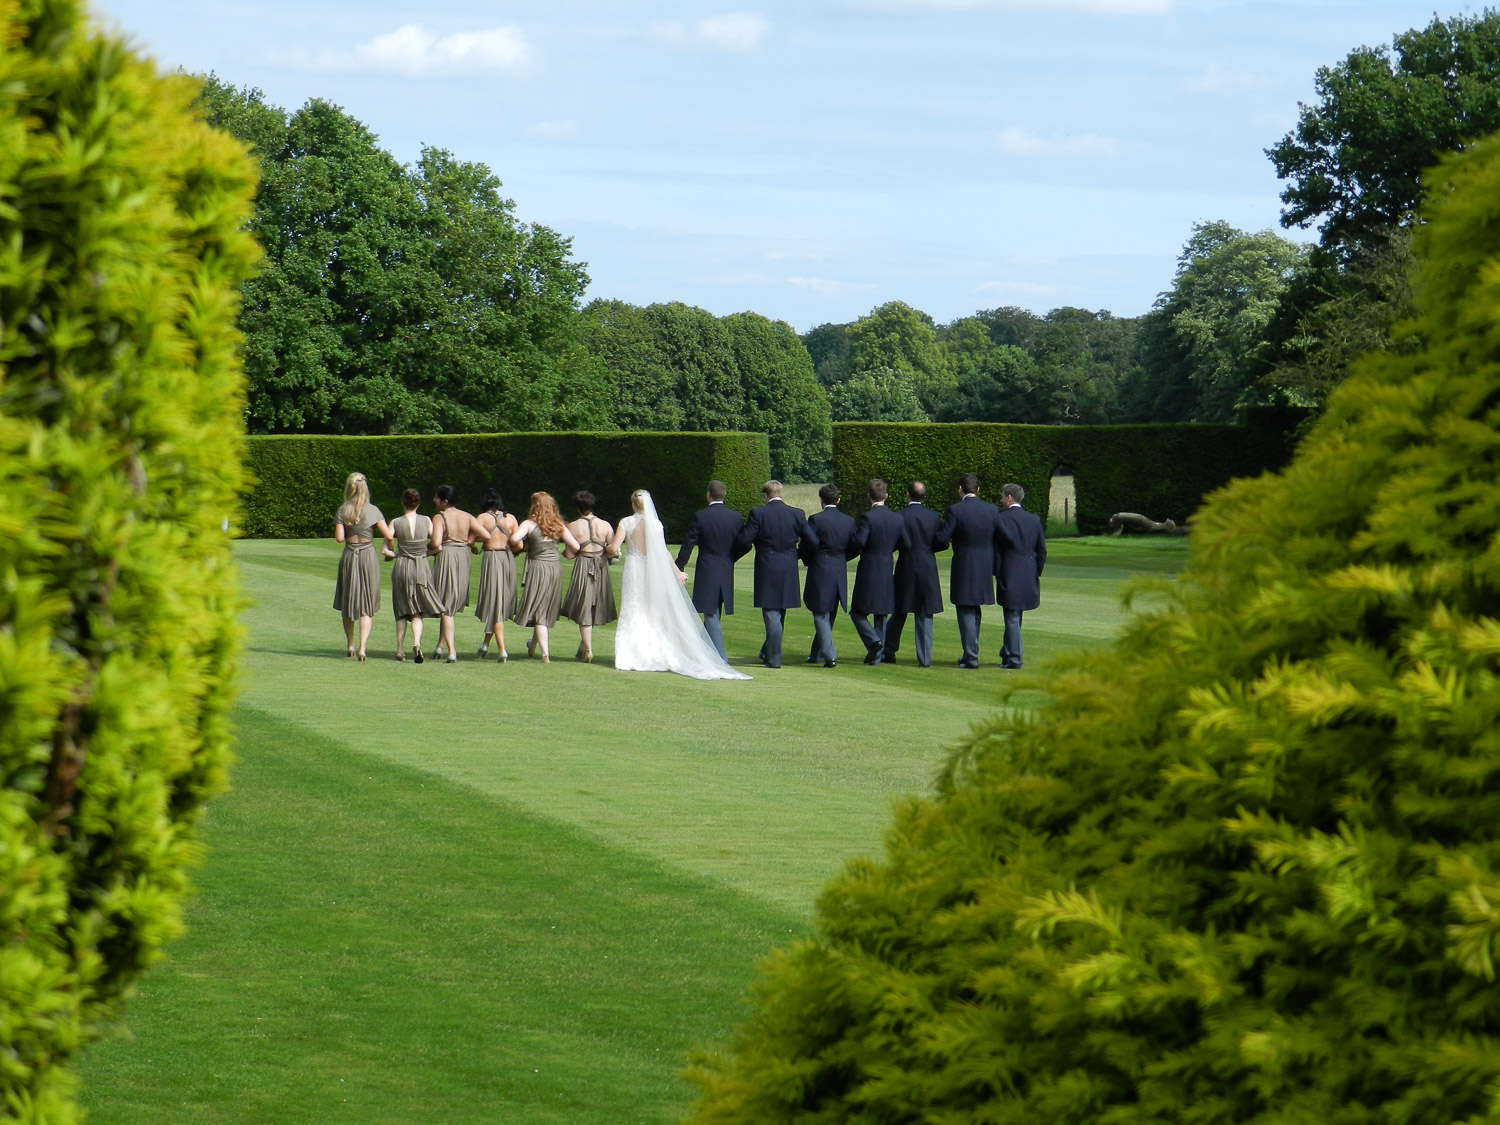 Gallery replacement No 3 Bridal party walking in garden.jpg